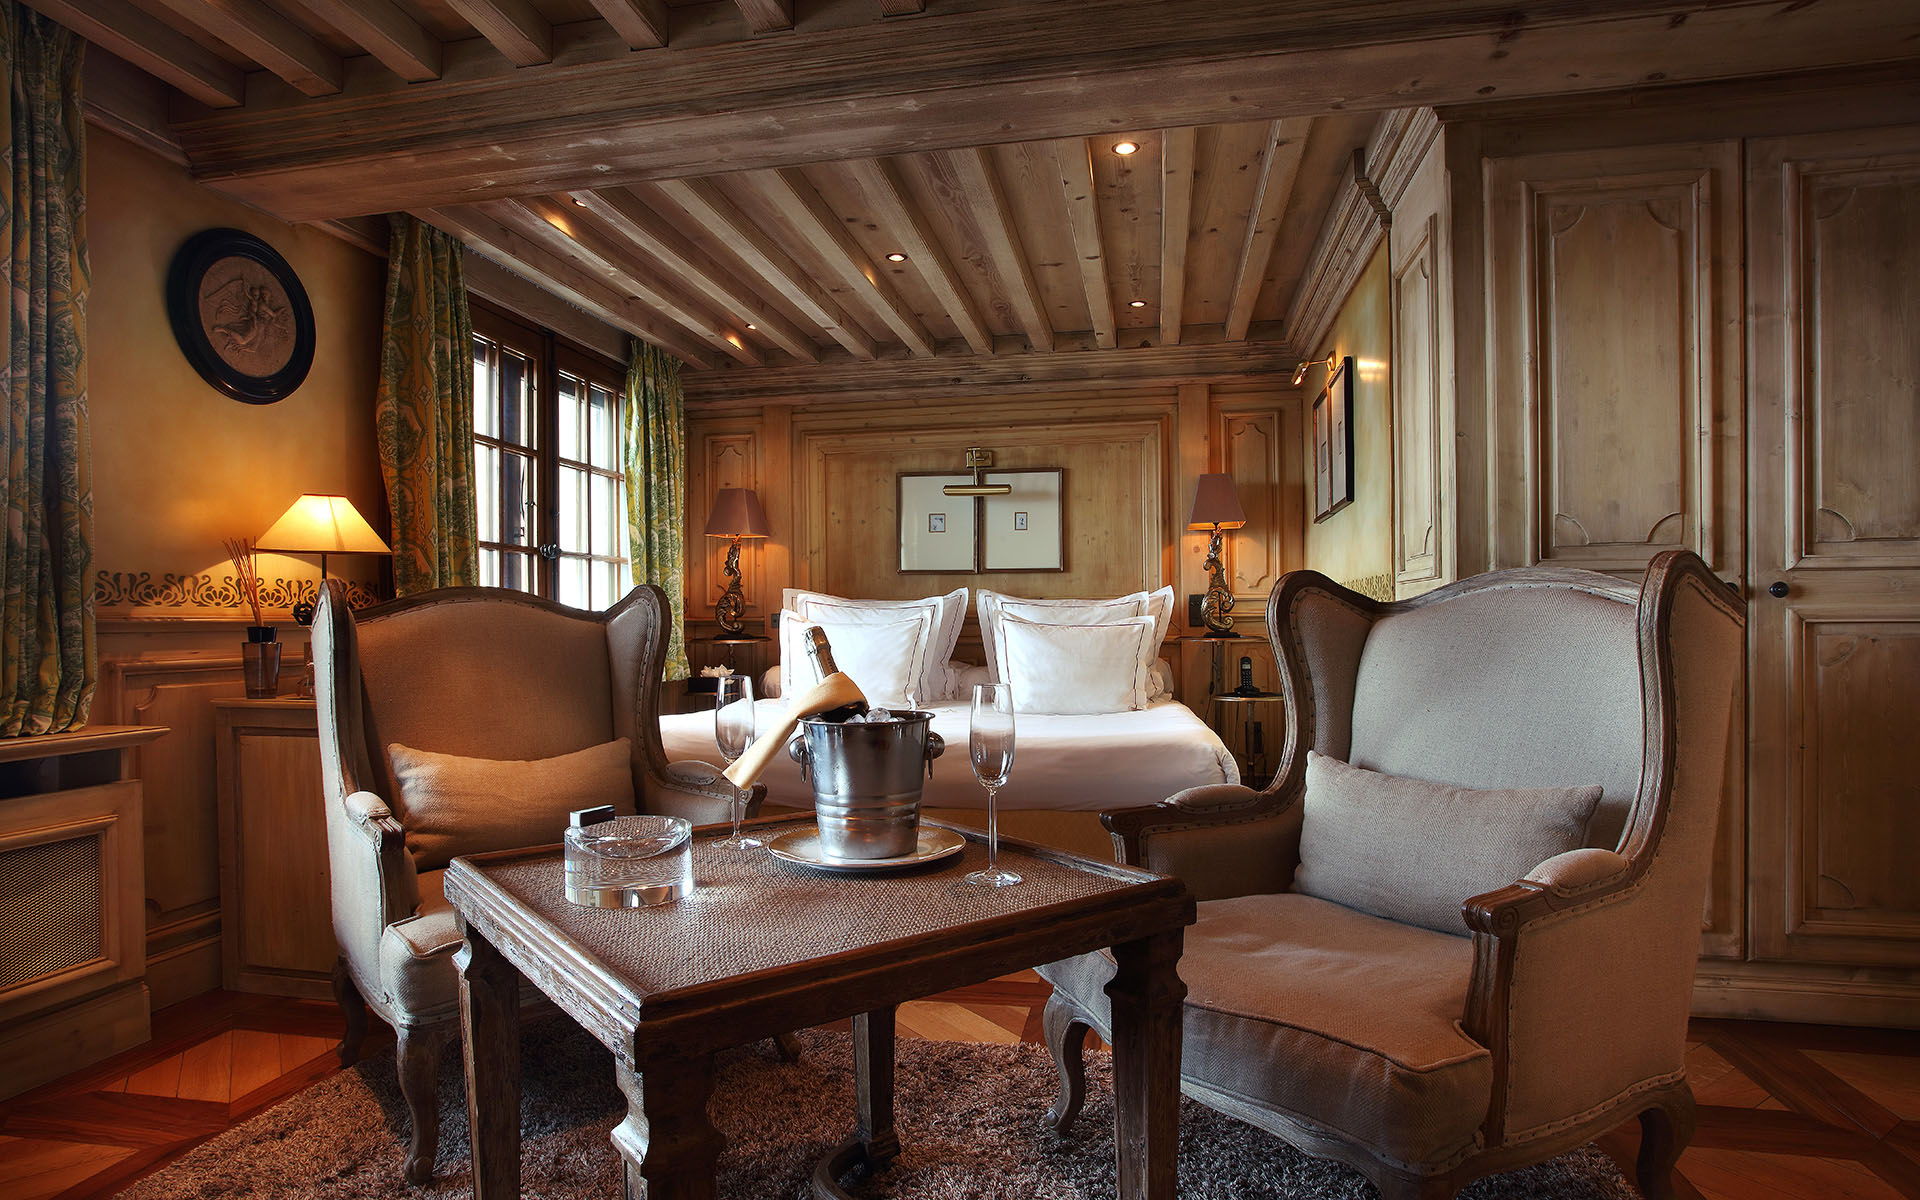 290/Hotel Saint Joseph/Chambre/Privileges/Saint_joseph_courchevel_privilege2.jpg